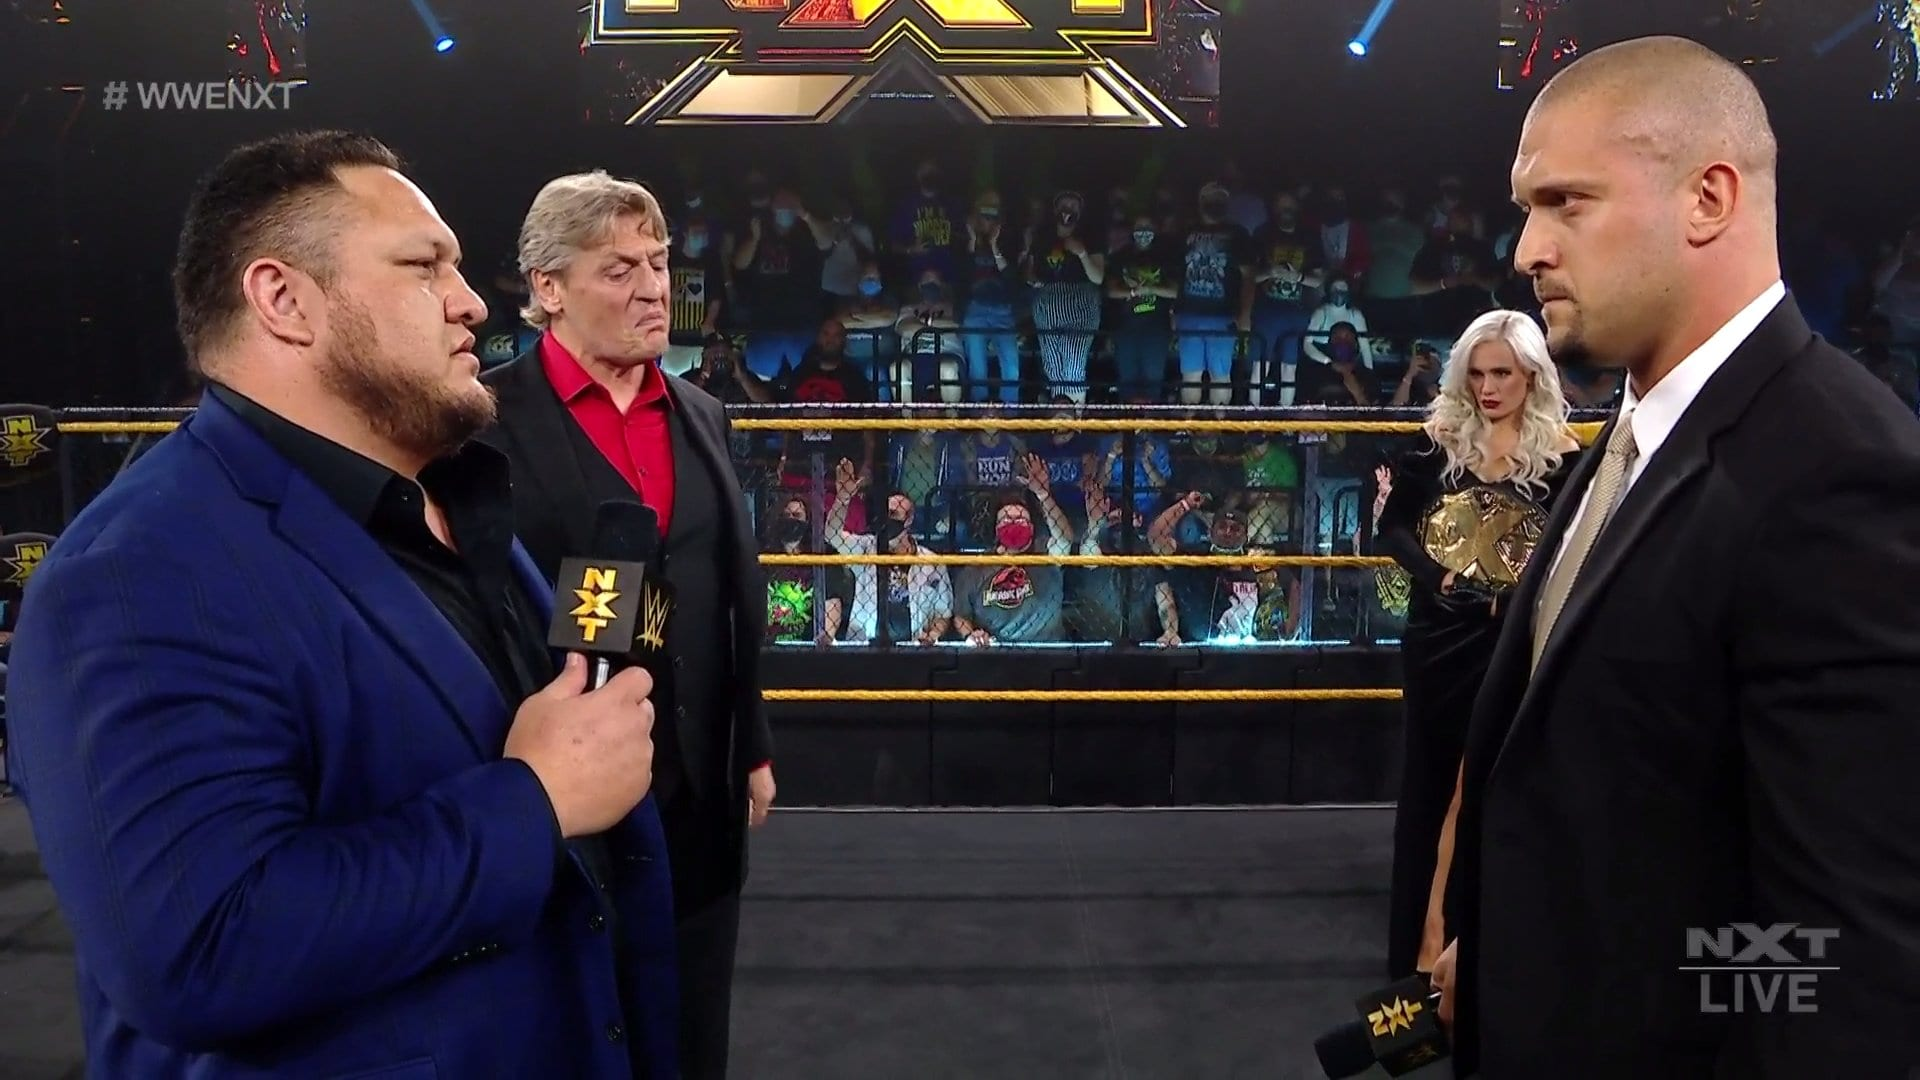 Samoa Joe Returns To NXT As Enforcer To The General Manager